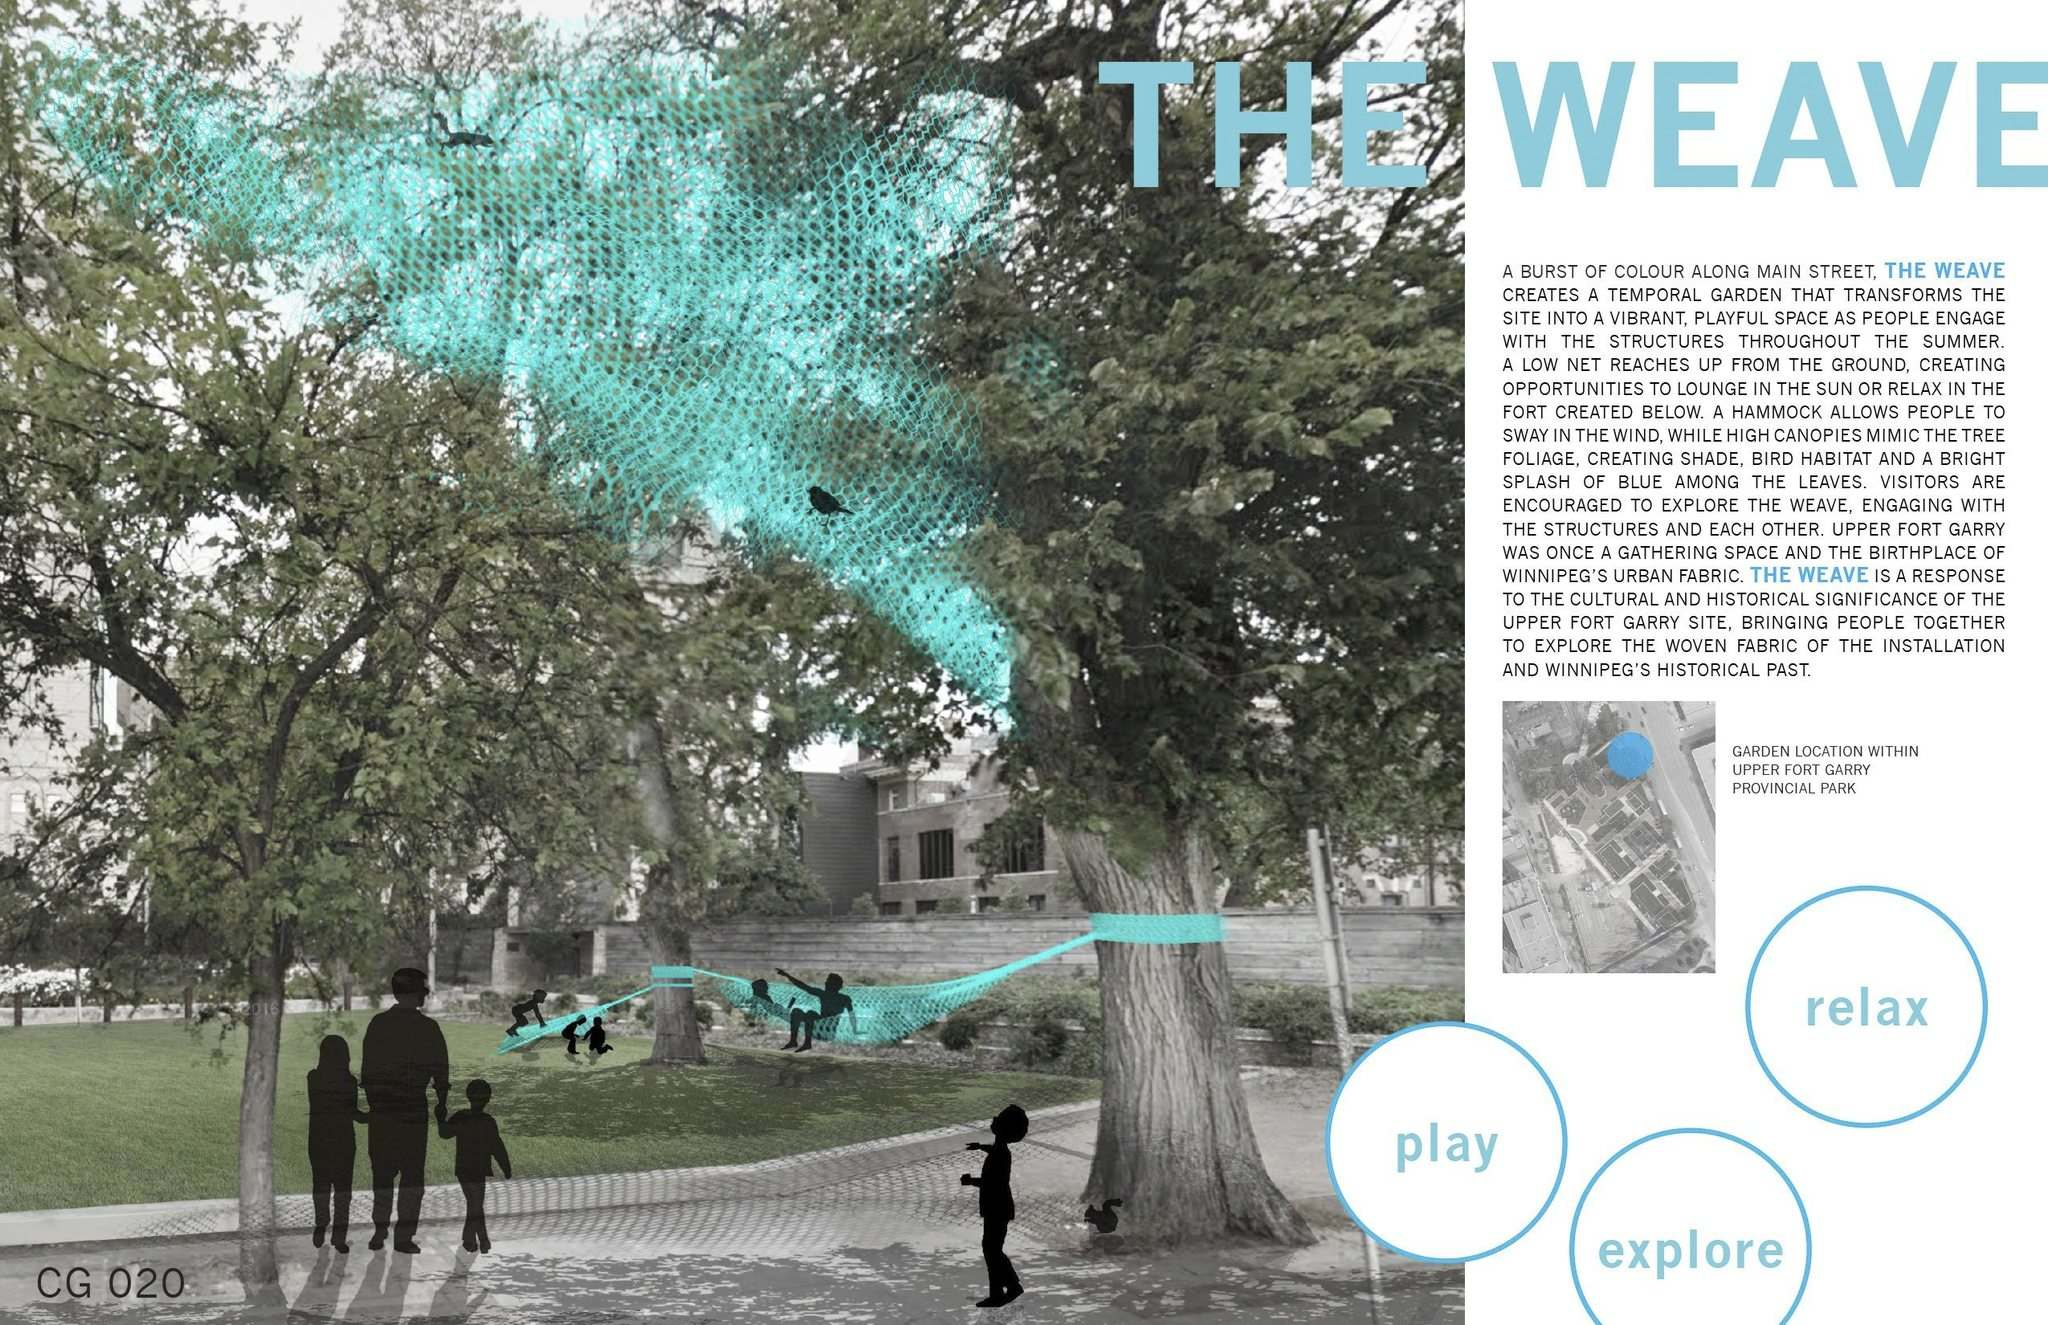 <p>The Weave, a fabric art concept created by landscape architects Rachelle Kirouac and Danielle Loeb of HTFC Planning and Design, will be installed through part of the Upper Fort Garry park as one of the two winning entries of the fifth annual Cool Gardens competition, the warm weather version of the skating trail warming huts on the river by The Forks.</p>